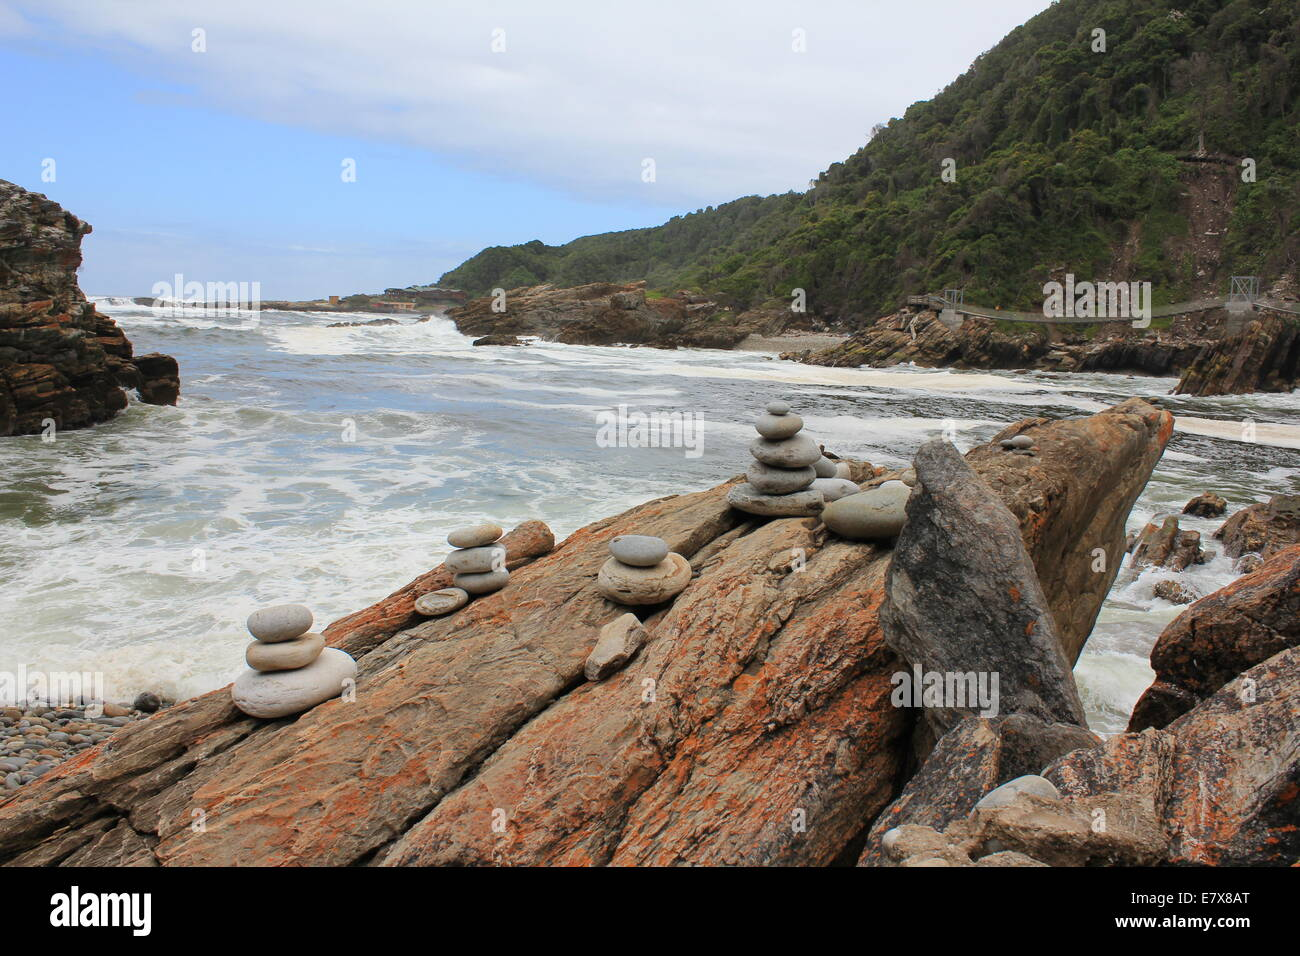 Several Cairn Rock Piles at River Mouth - Stock Image